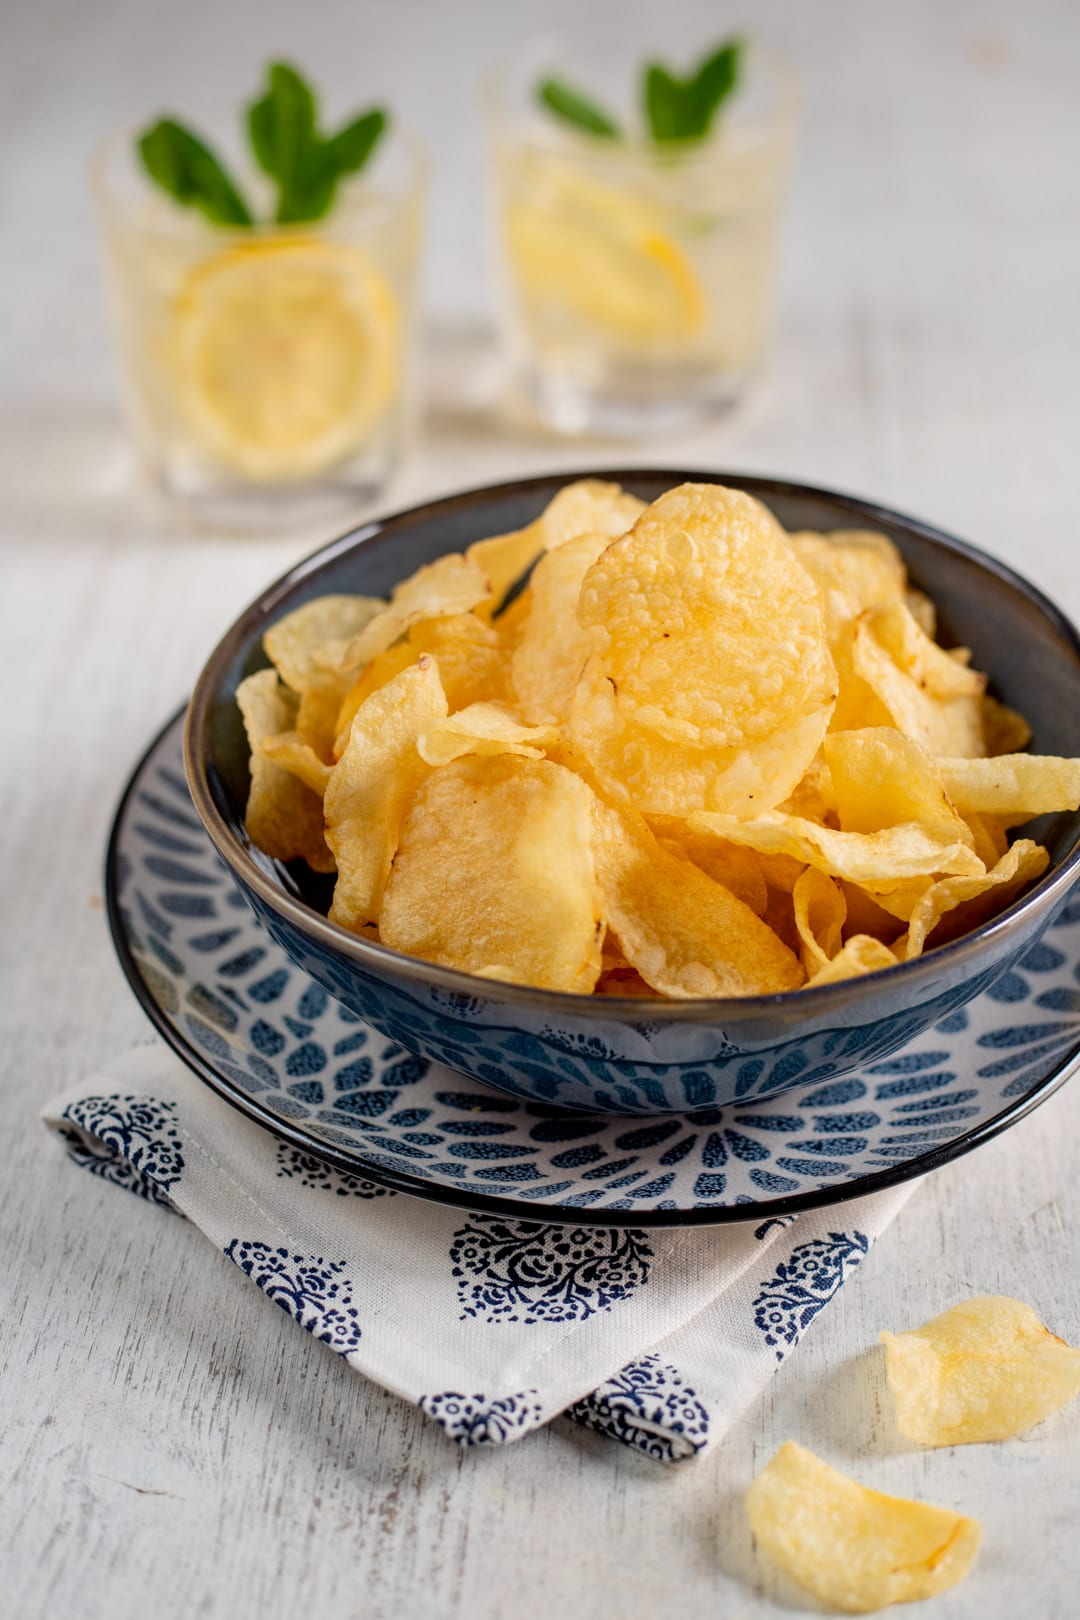 Chips di patate pronte all'assaggio